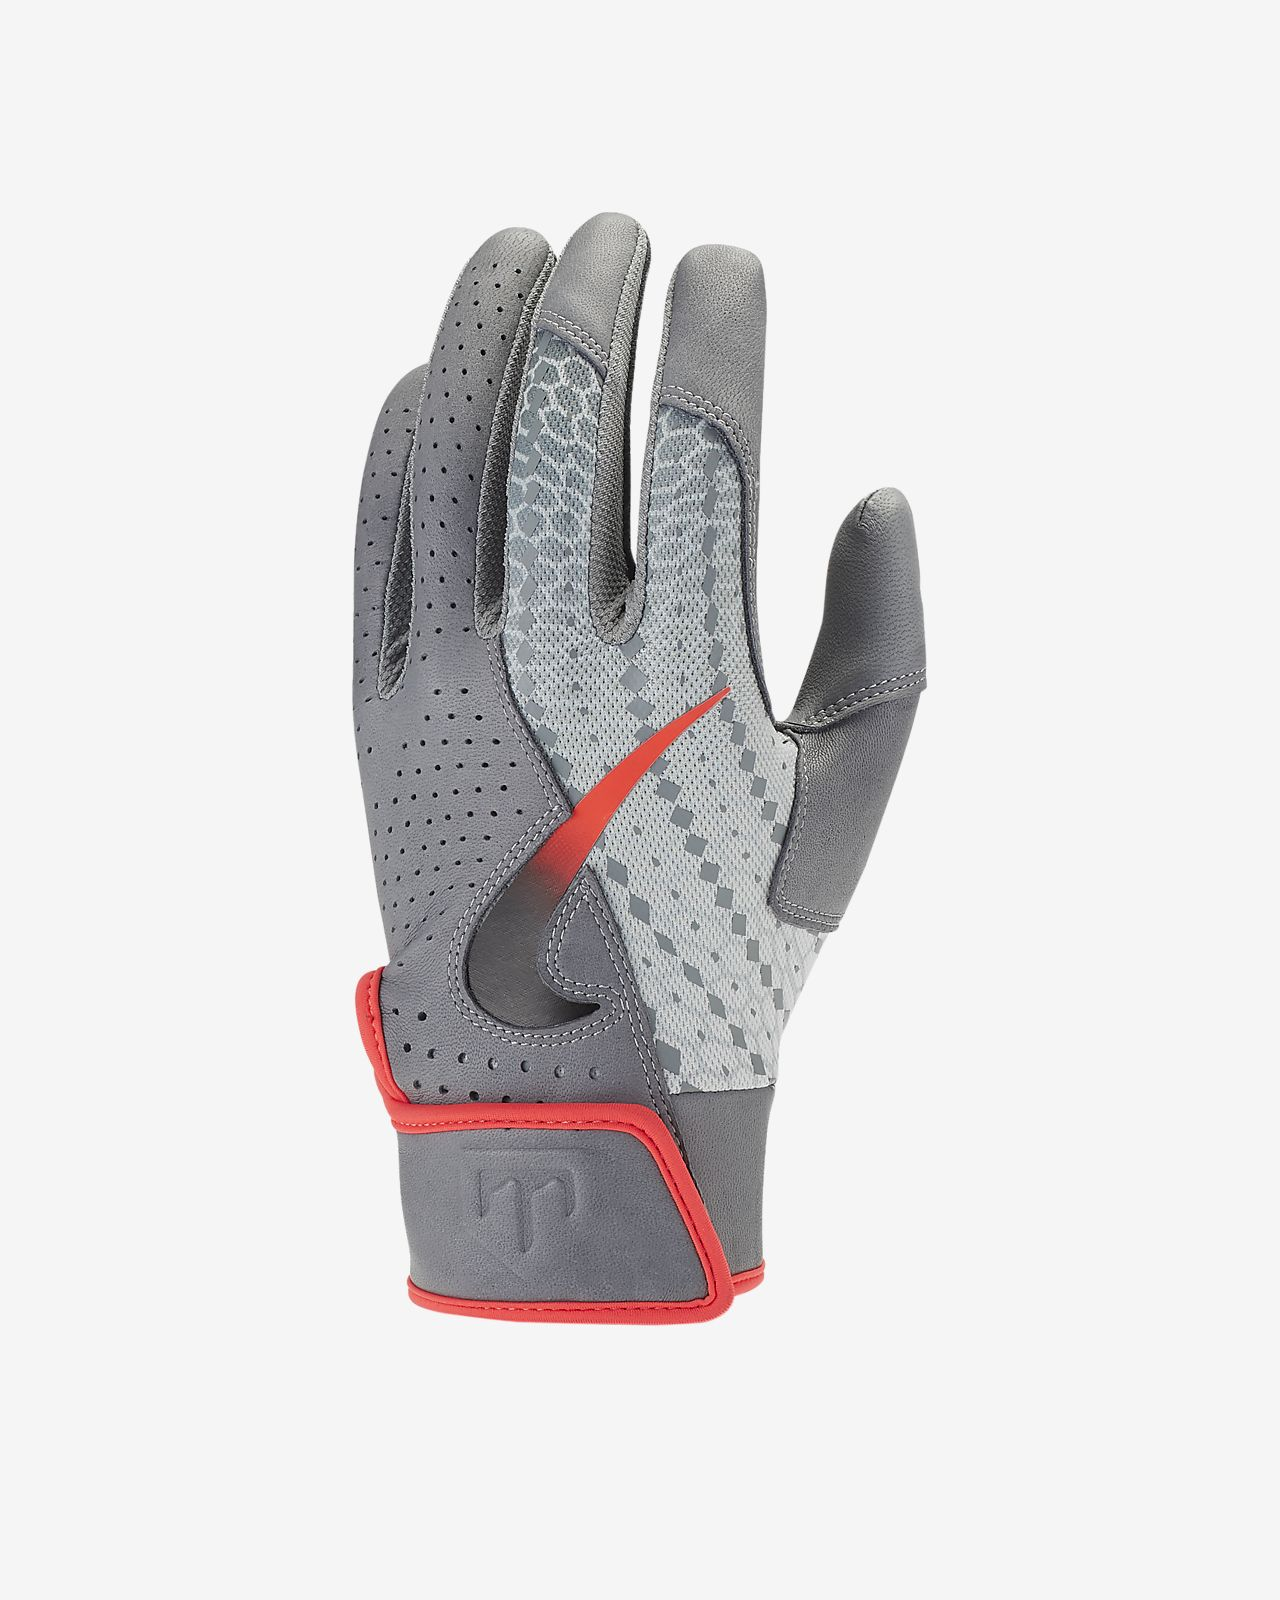 197de28b067 Nike Trout Elite 2.0 Baseball Batting Gloves. Nike.com